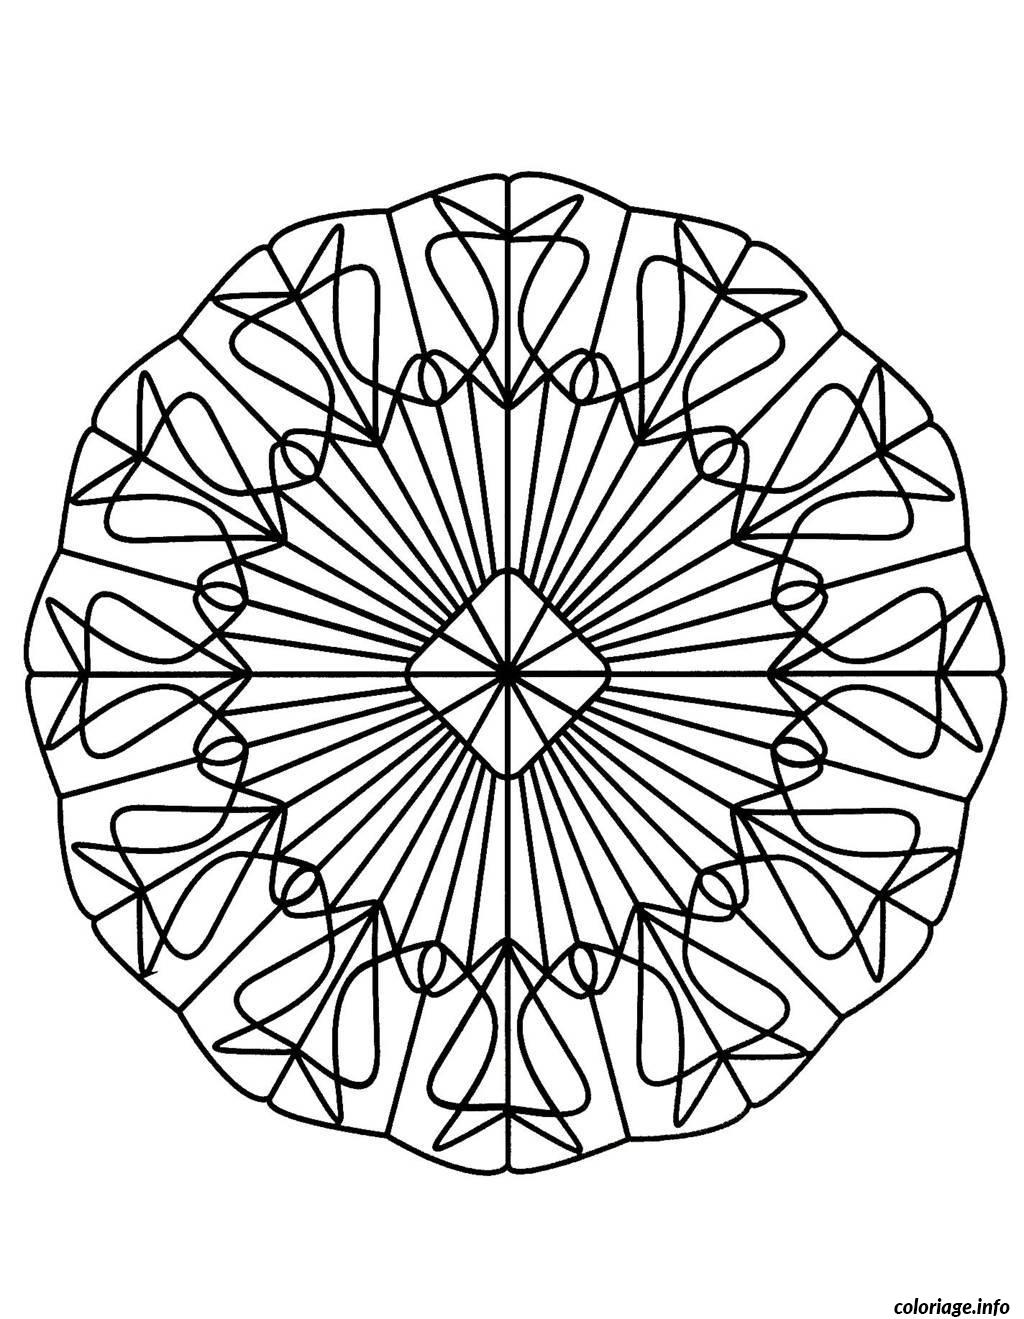 coloriage mandalas to download for free 20 dessin. Black Bedroom Furniture Sets. Home Design Ideas